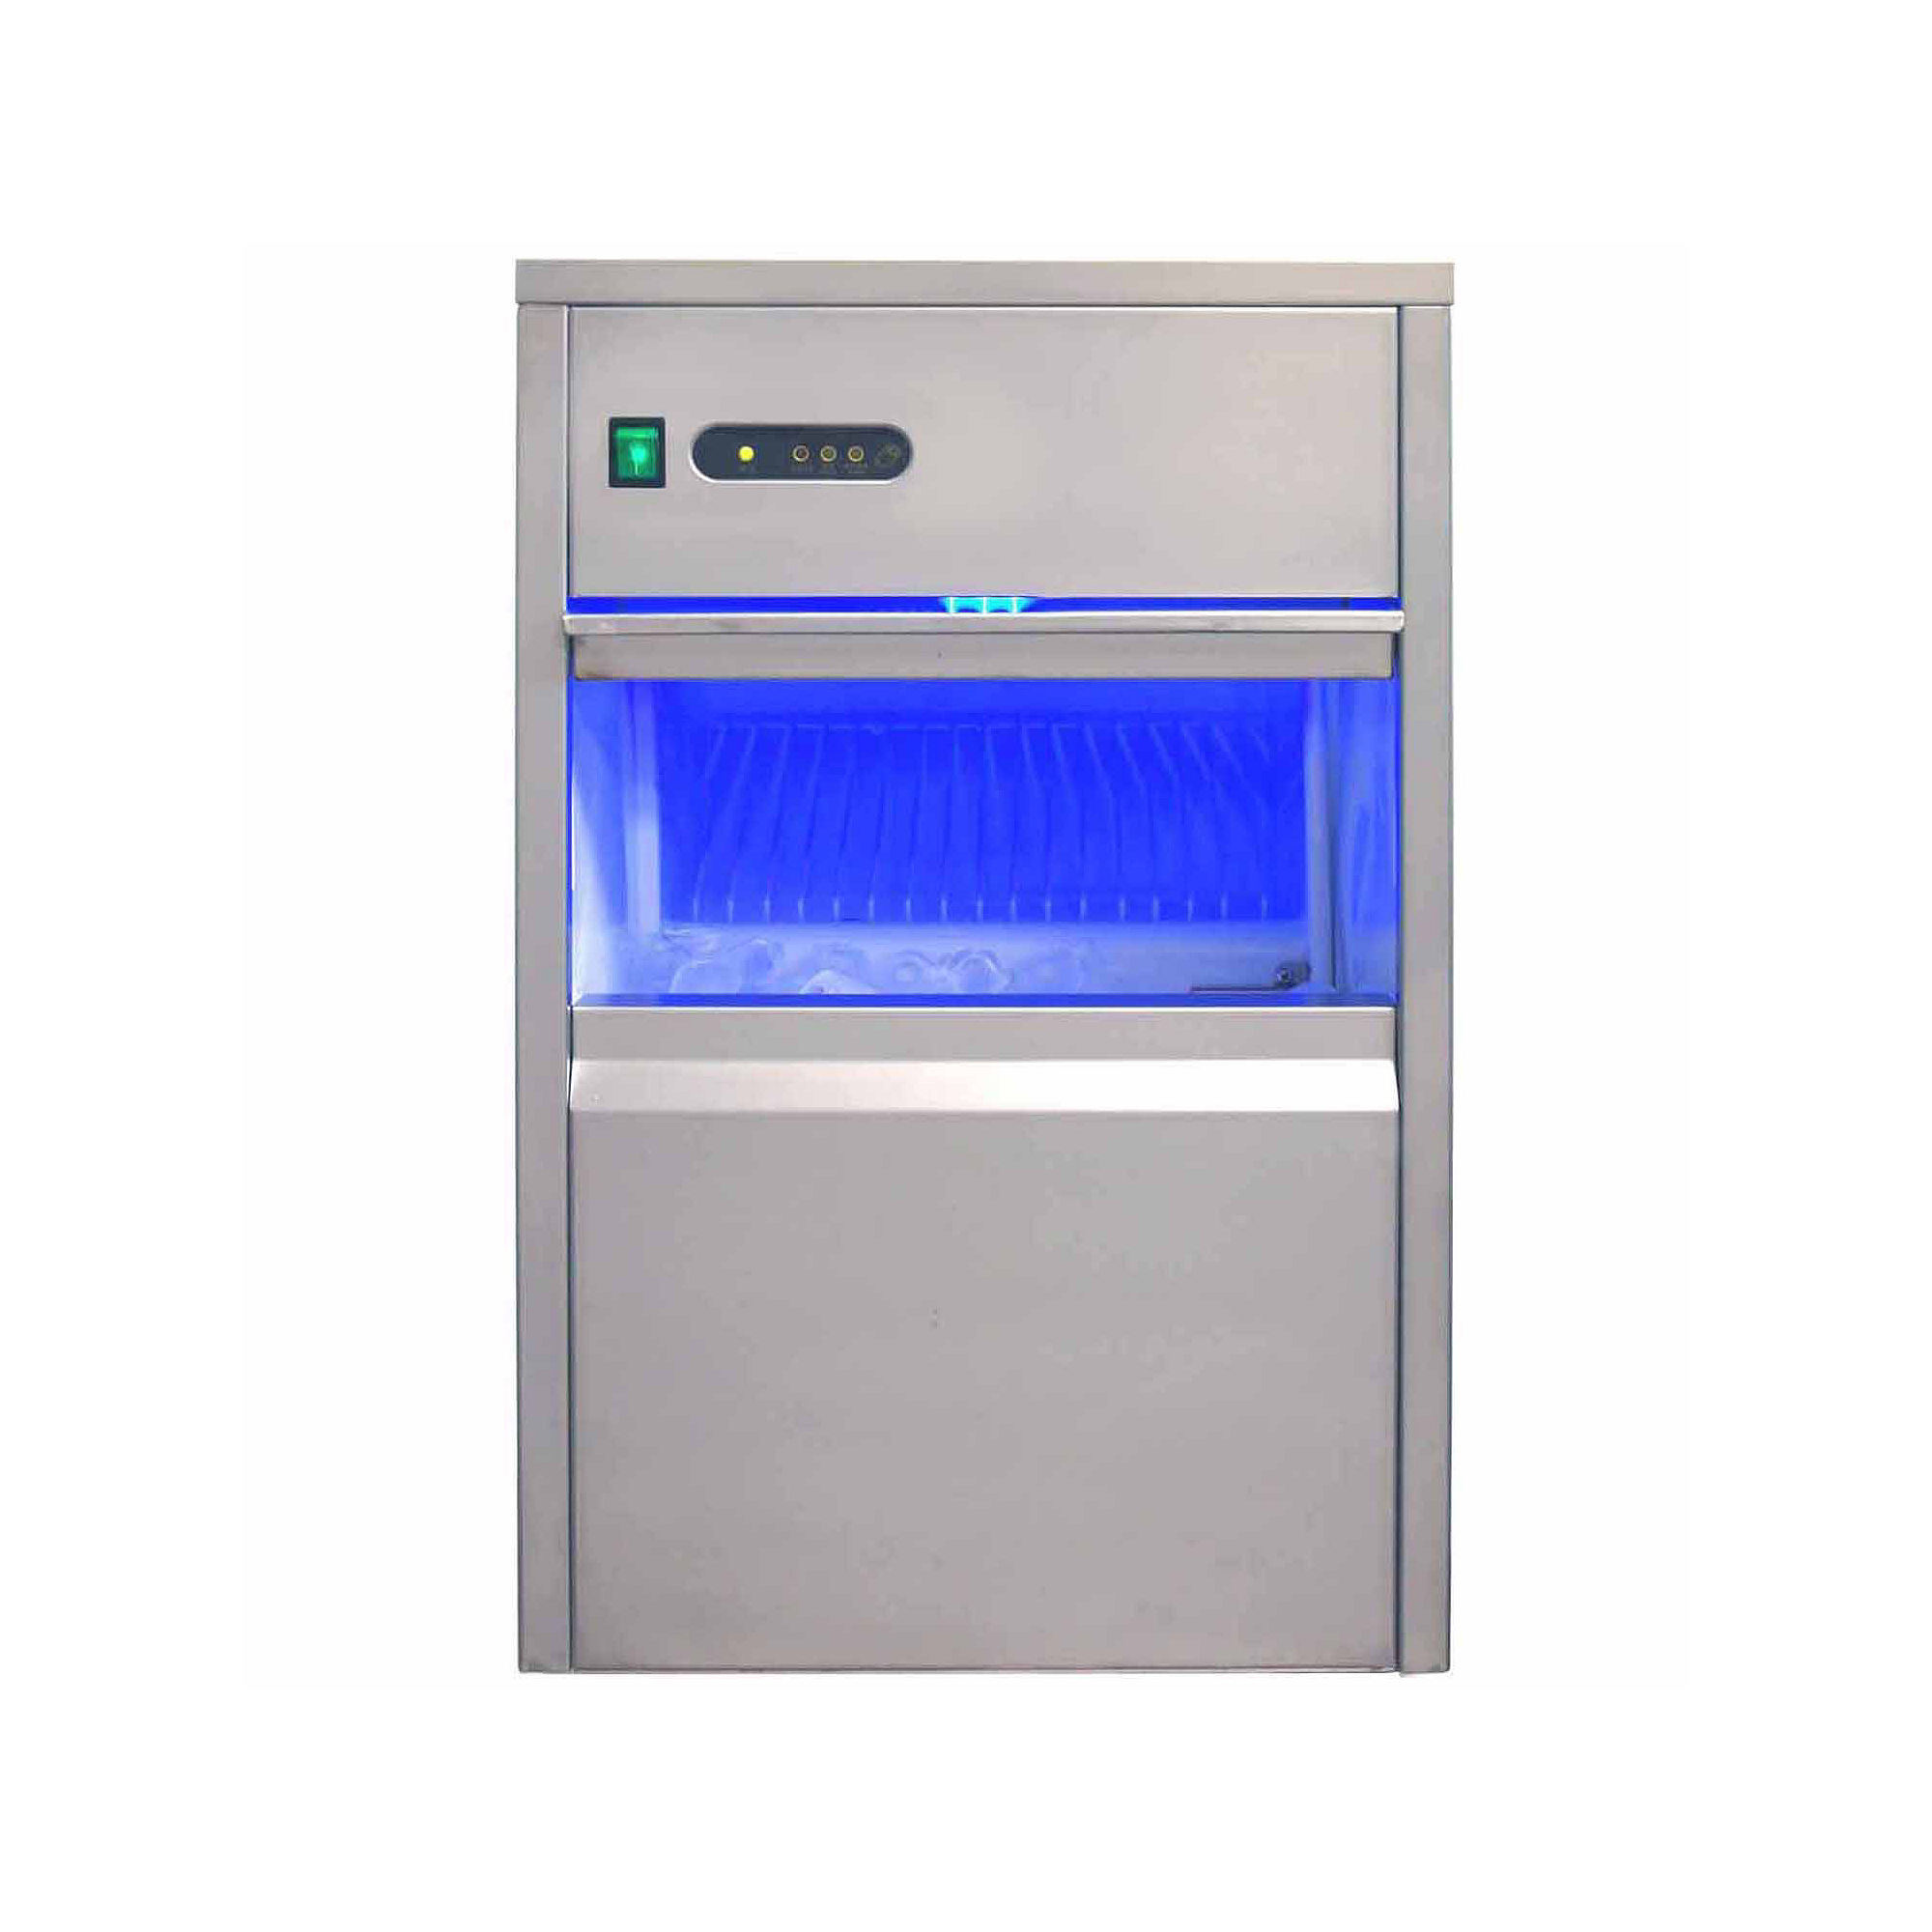 SPT IM-660C: 66 lbs Automatic Stainless Steel Ice Maker